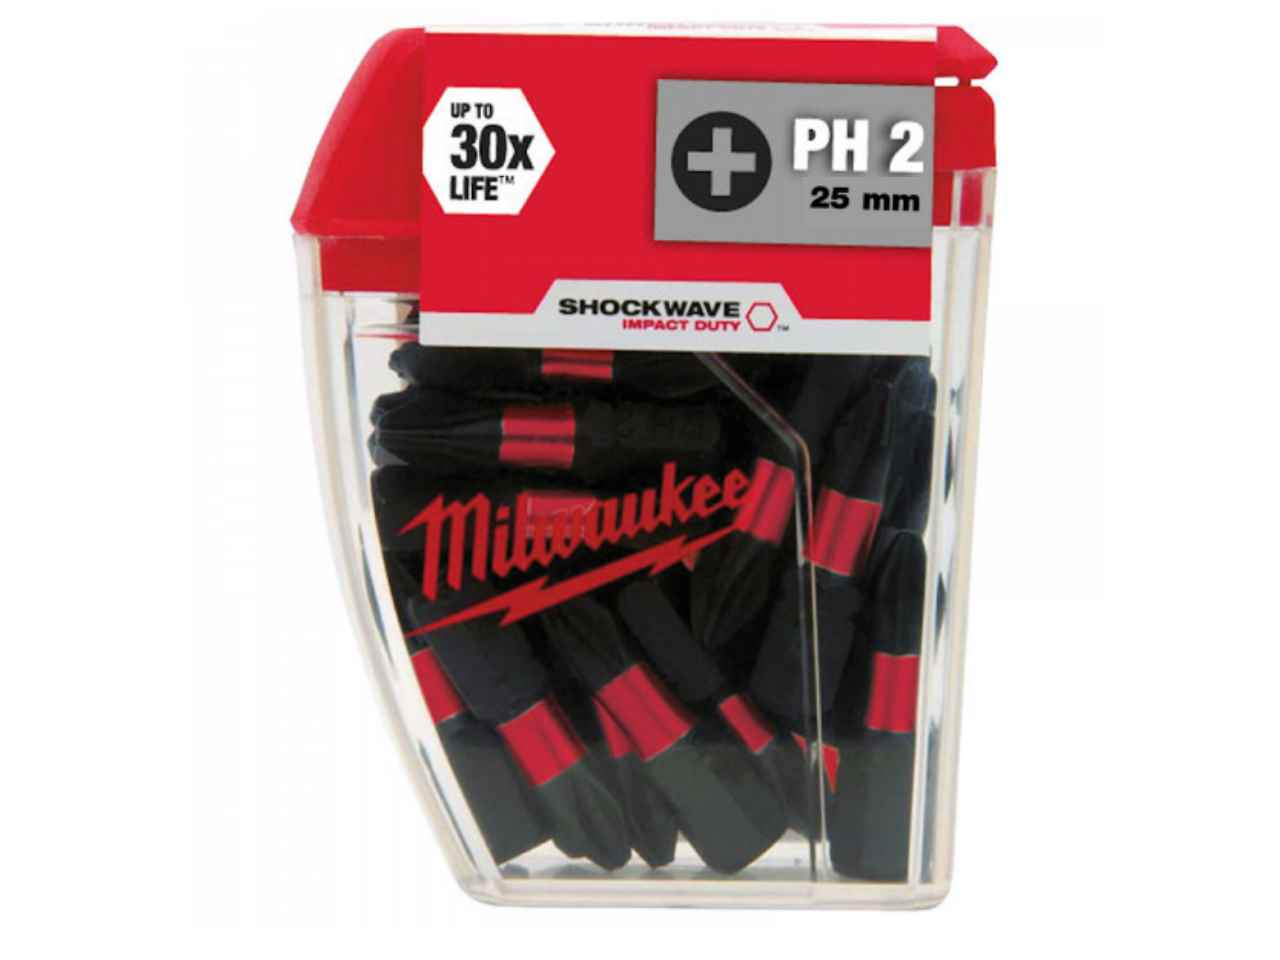 Milwaukee Sawzall Wiring Diagram 4932430853 Shockwave Ph2 25mm Screwdriver Bit 25pk 795 Save 1951